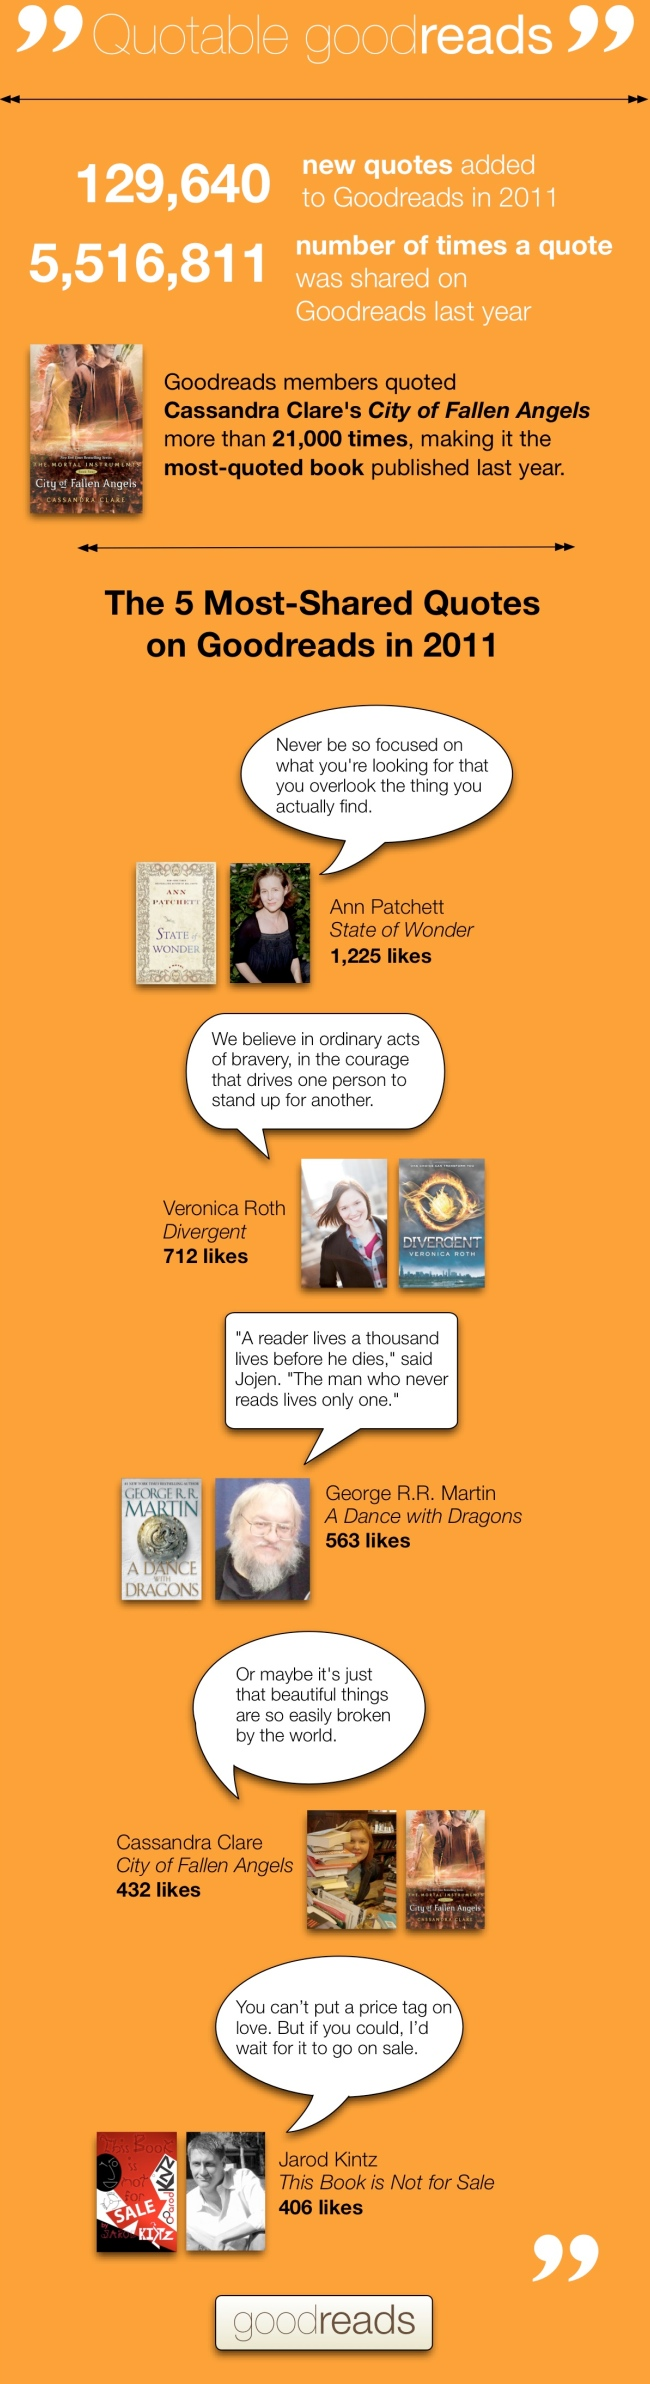 Goodreads Quotes Goodreads Blog Post Quotable Goodreads 2011's Mostloved Quotes